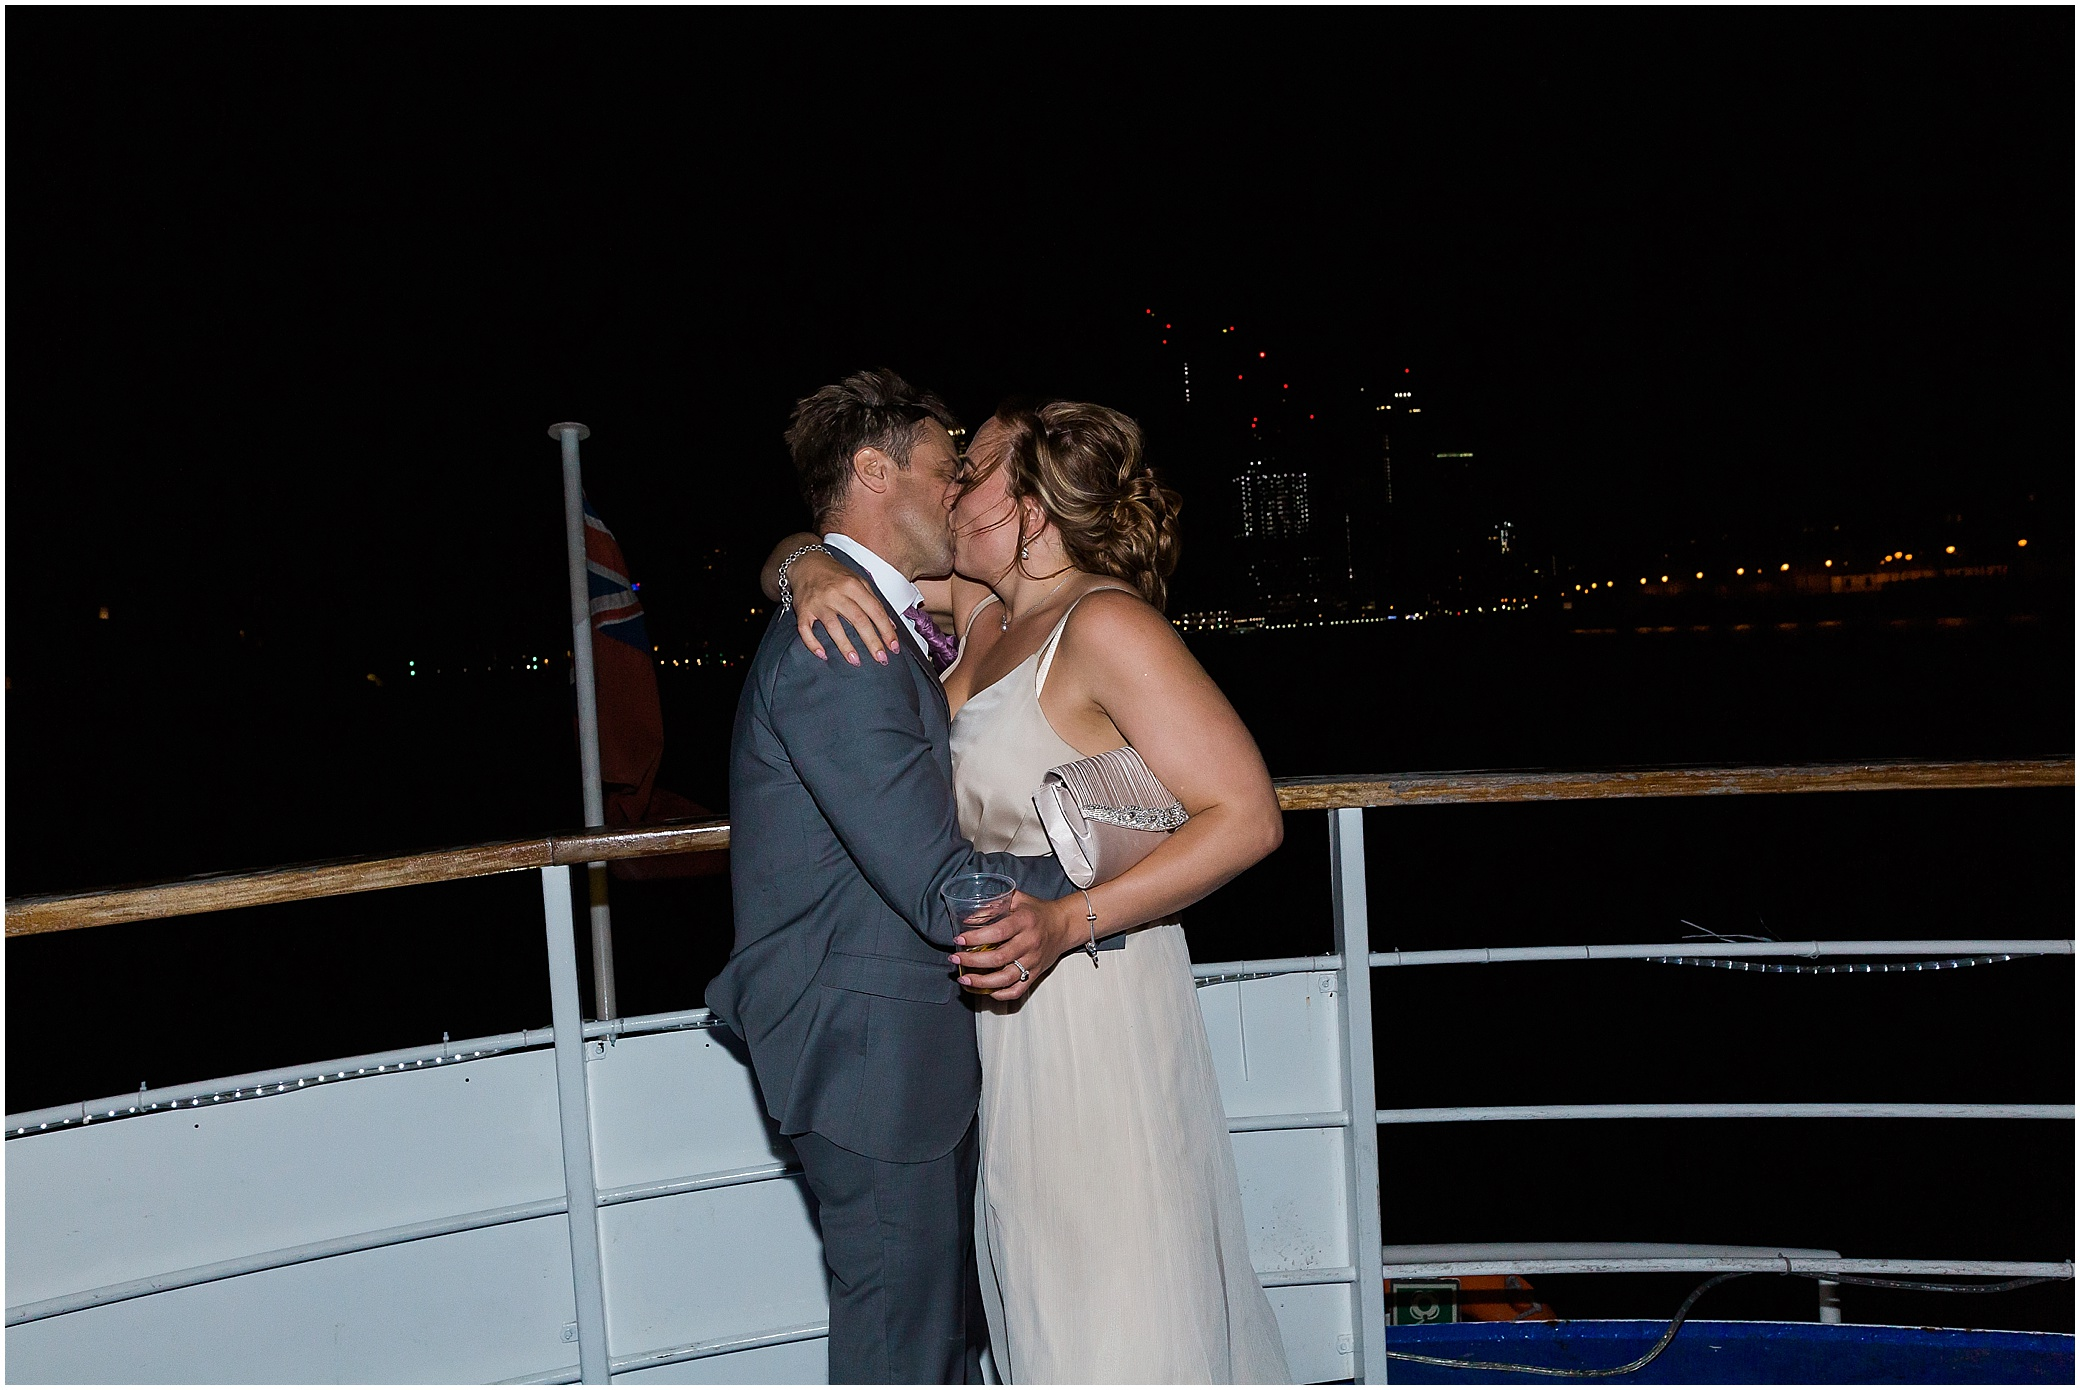 Bride and groom kiss at their wedding party on a London riverboat